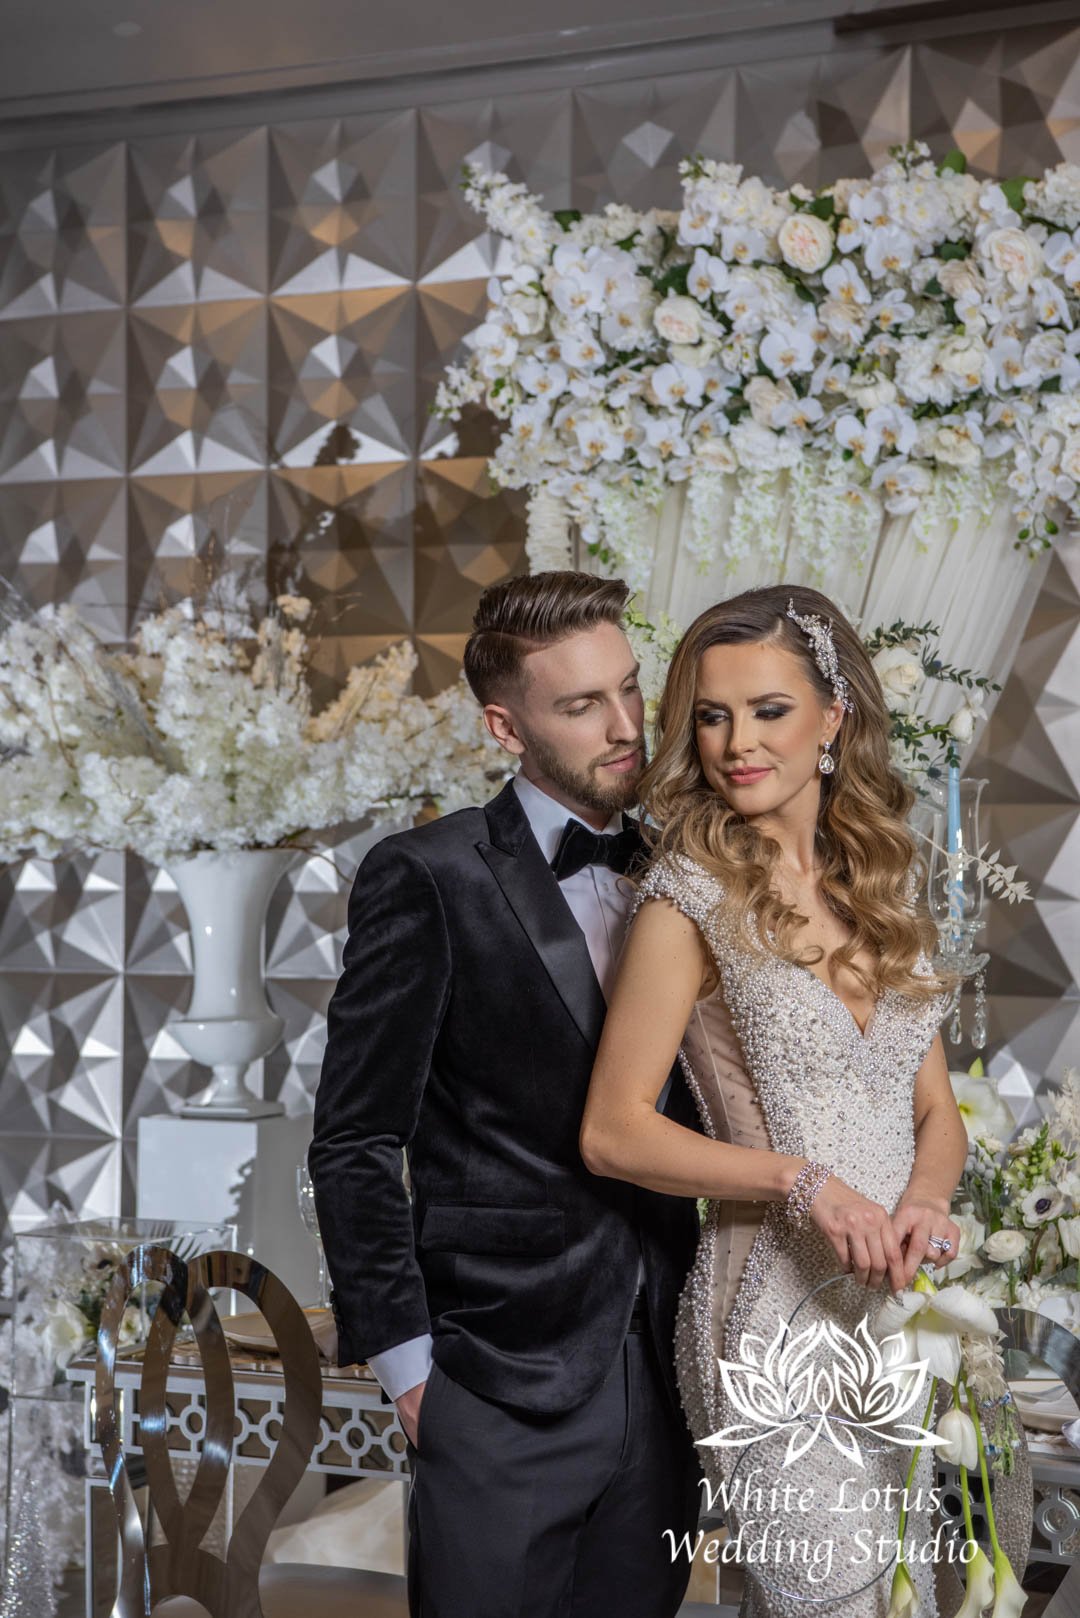 141- GLAM WINTERLUXE WEDDING INSPIRATION